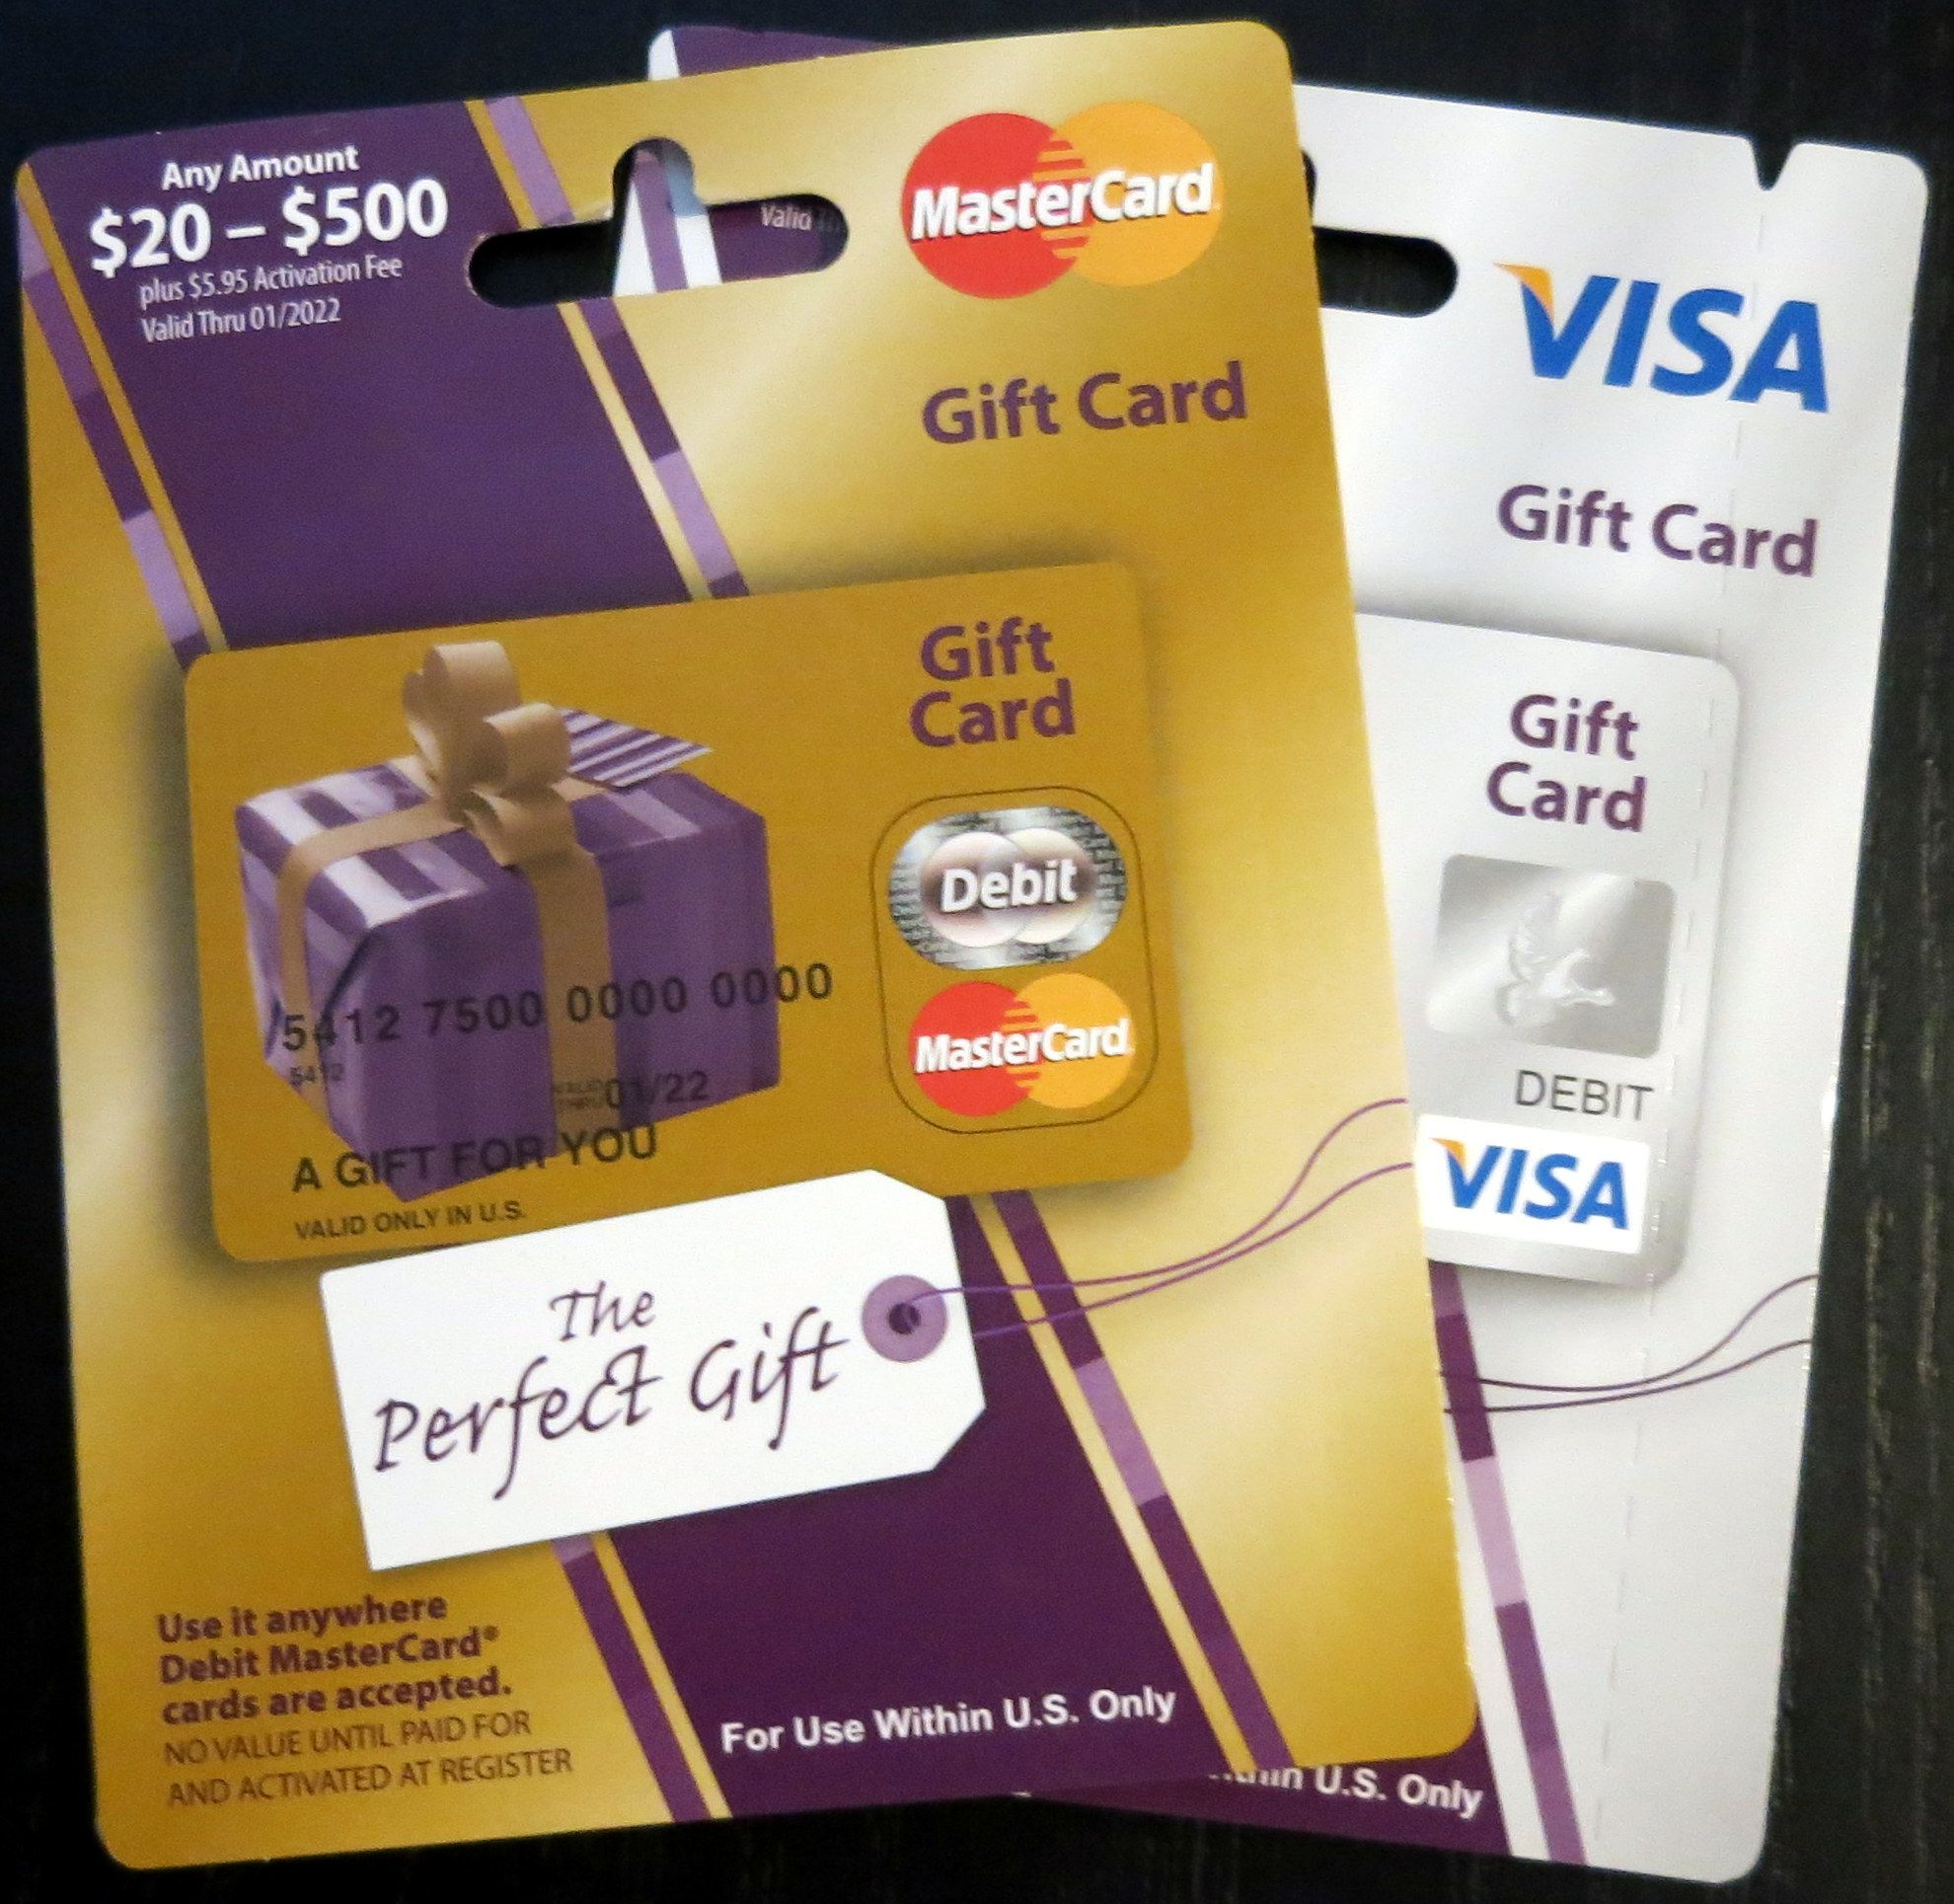 purchase visa gift card online photo - 1